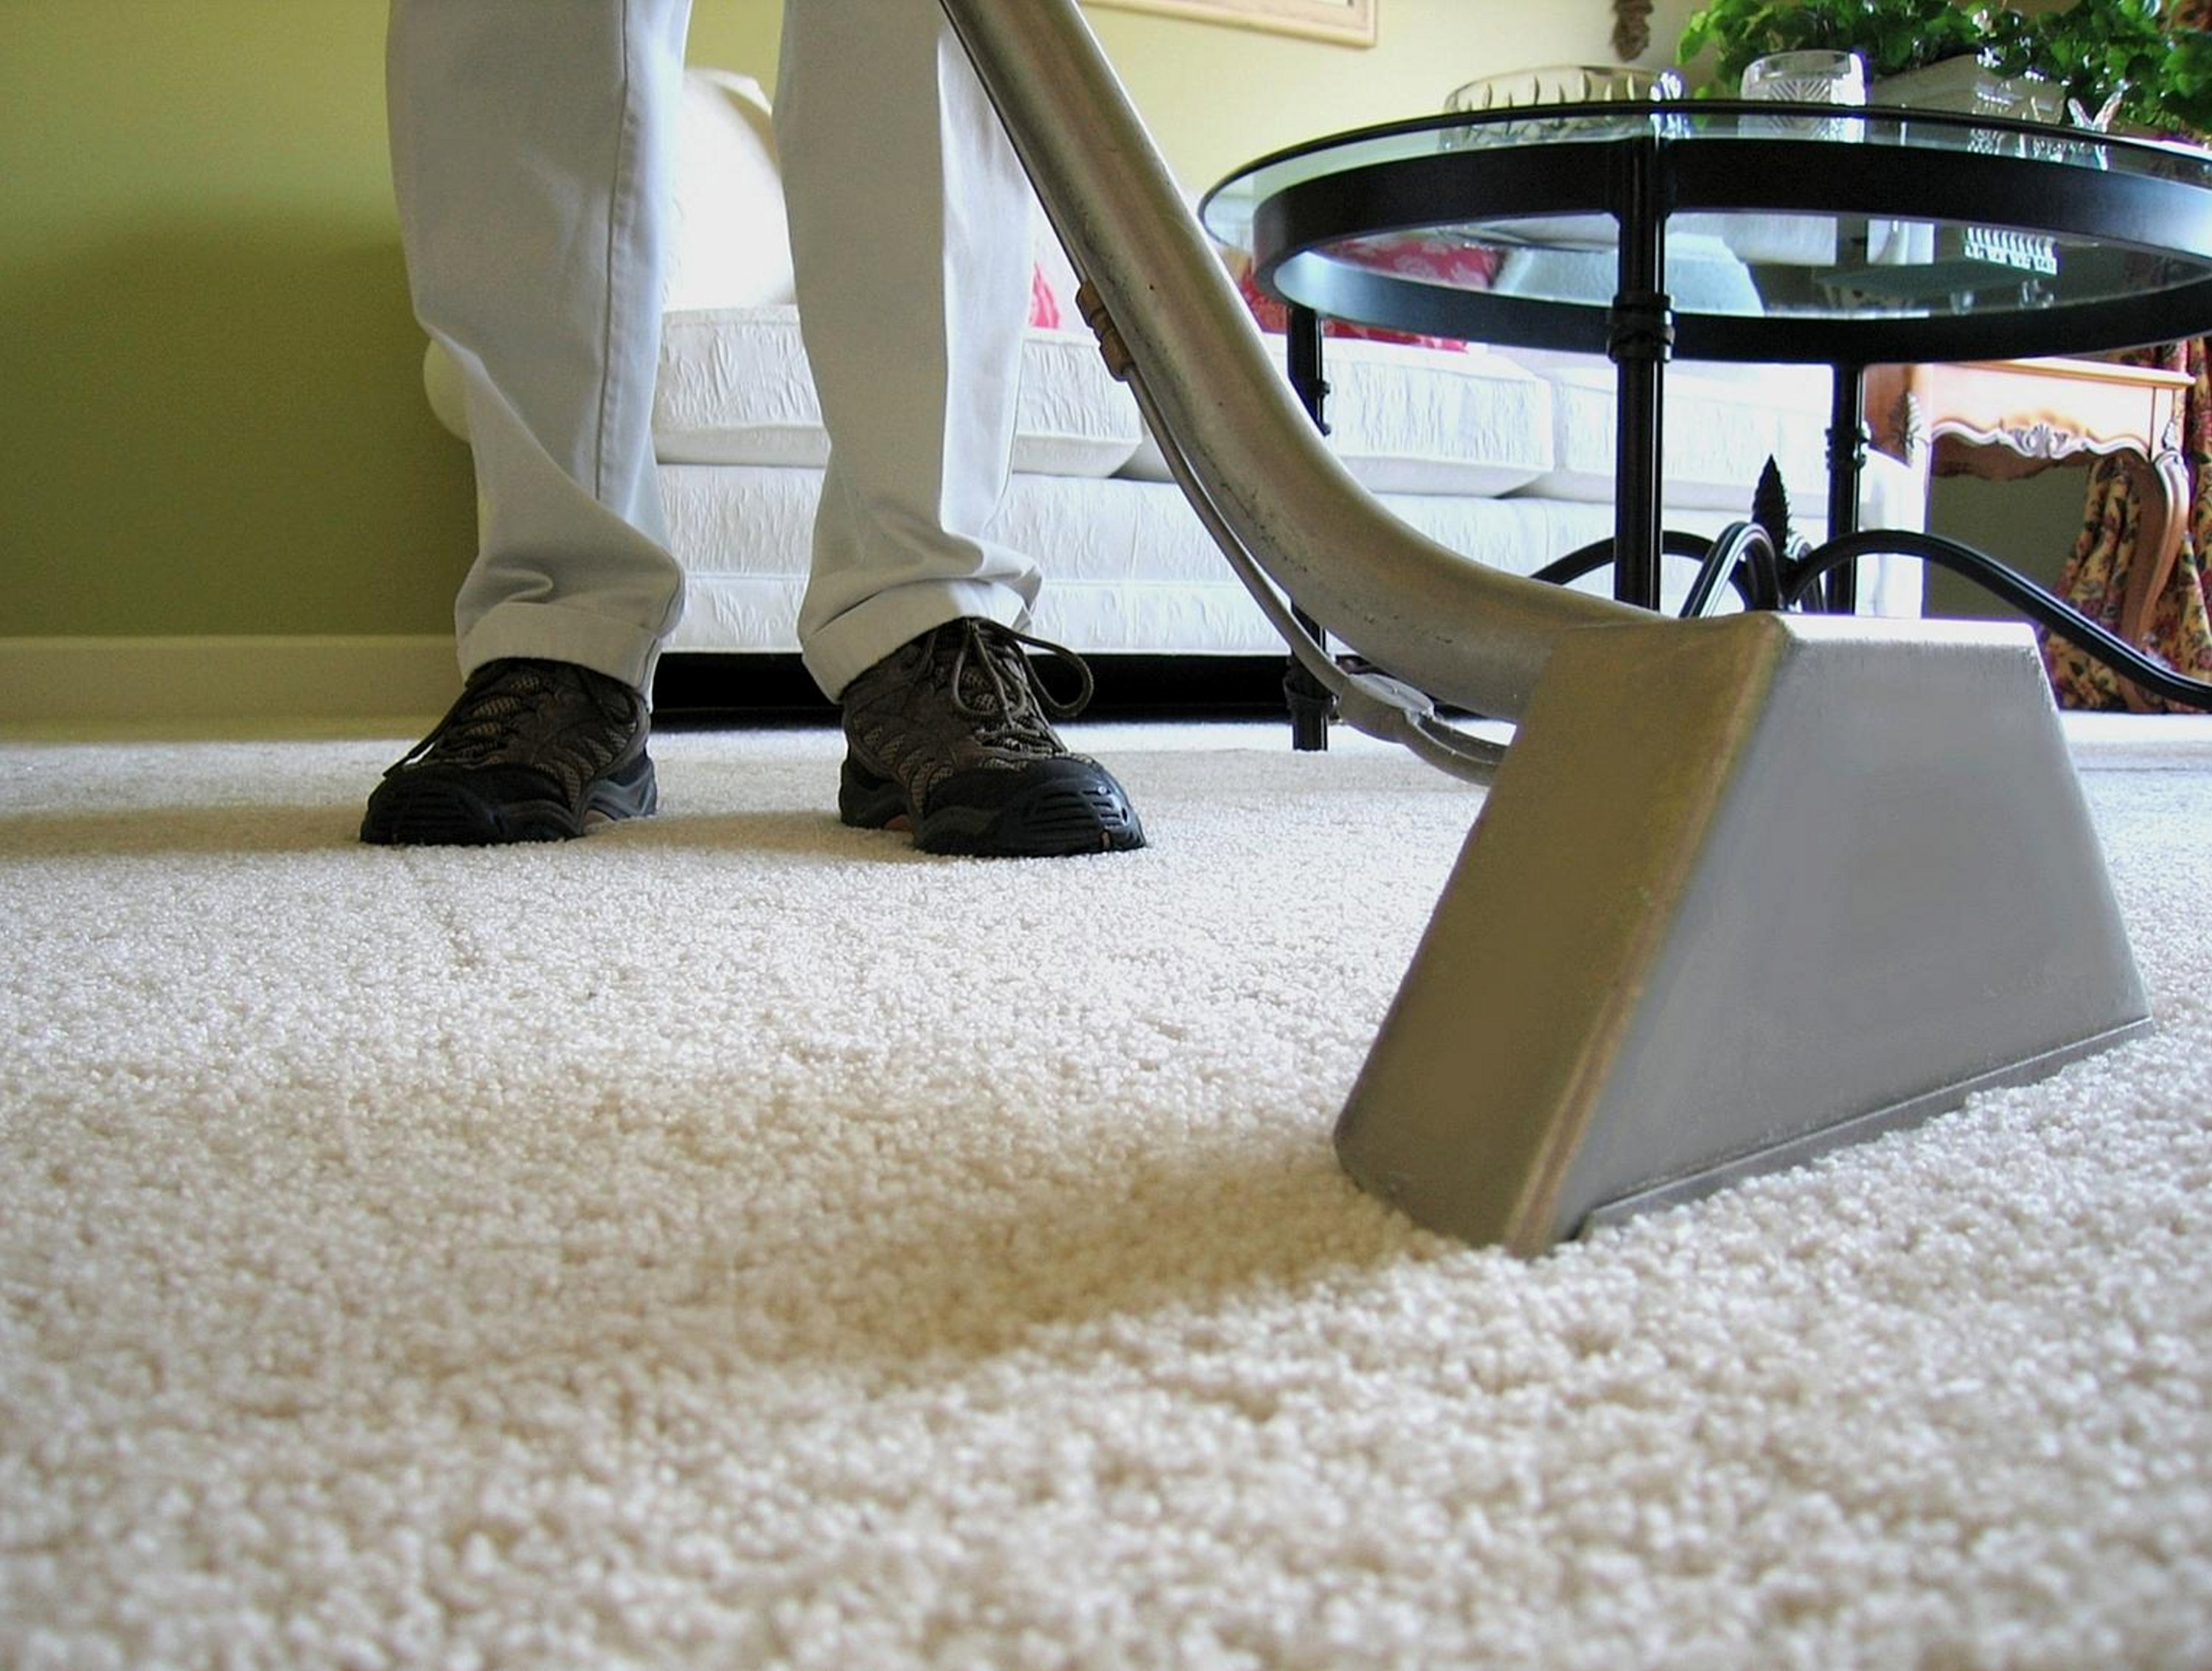 Carpet cleaning business that understands everything about carpet cleaning and improvements in the same area.